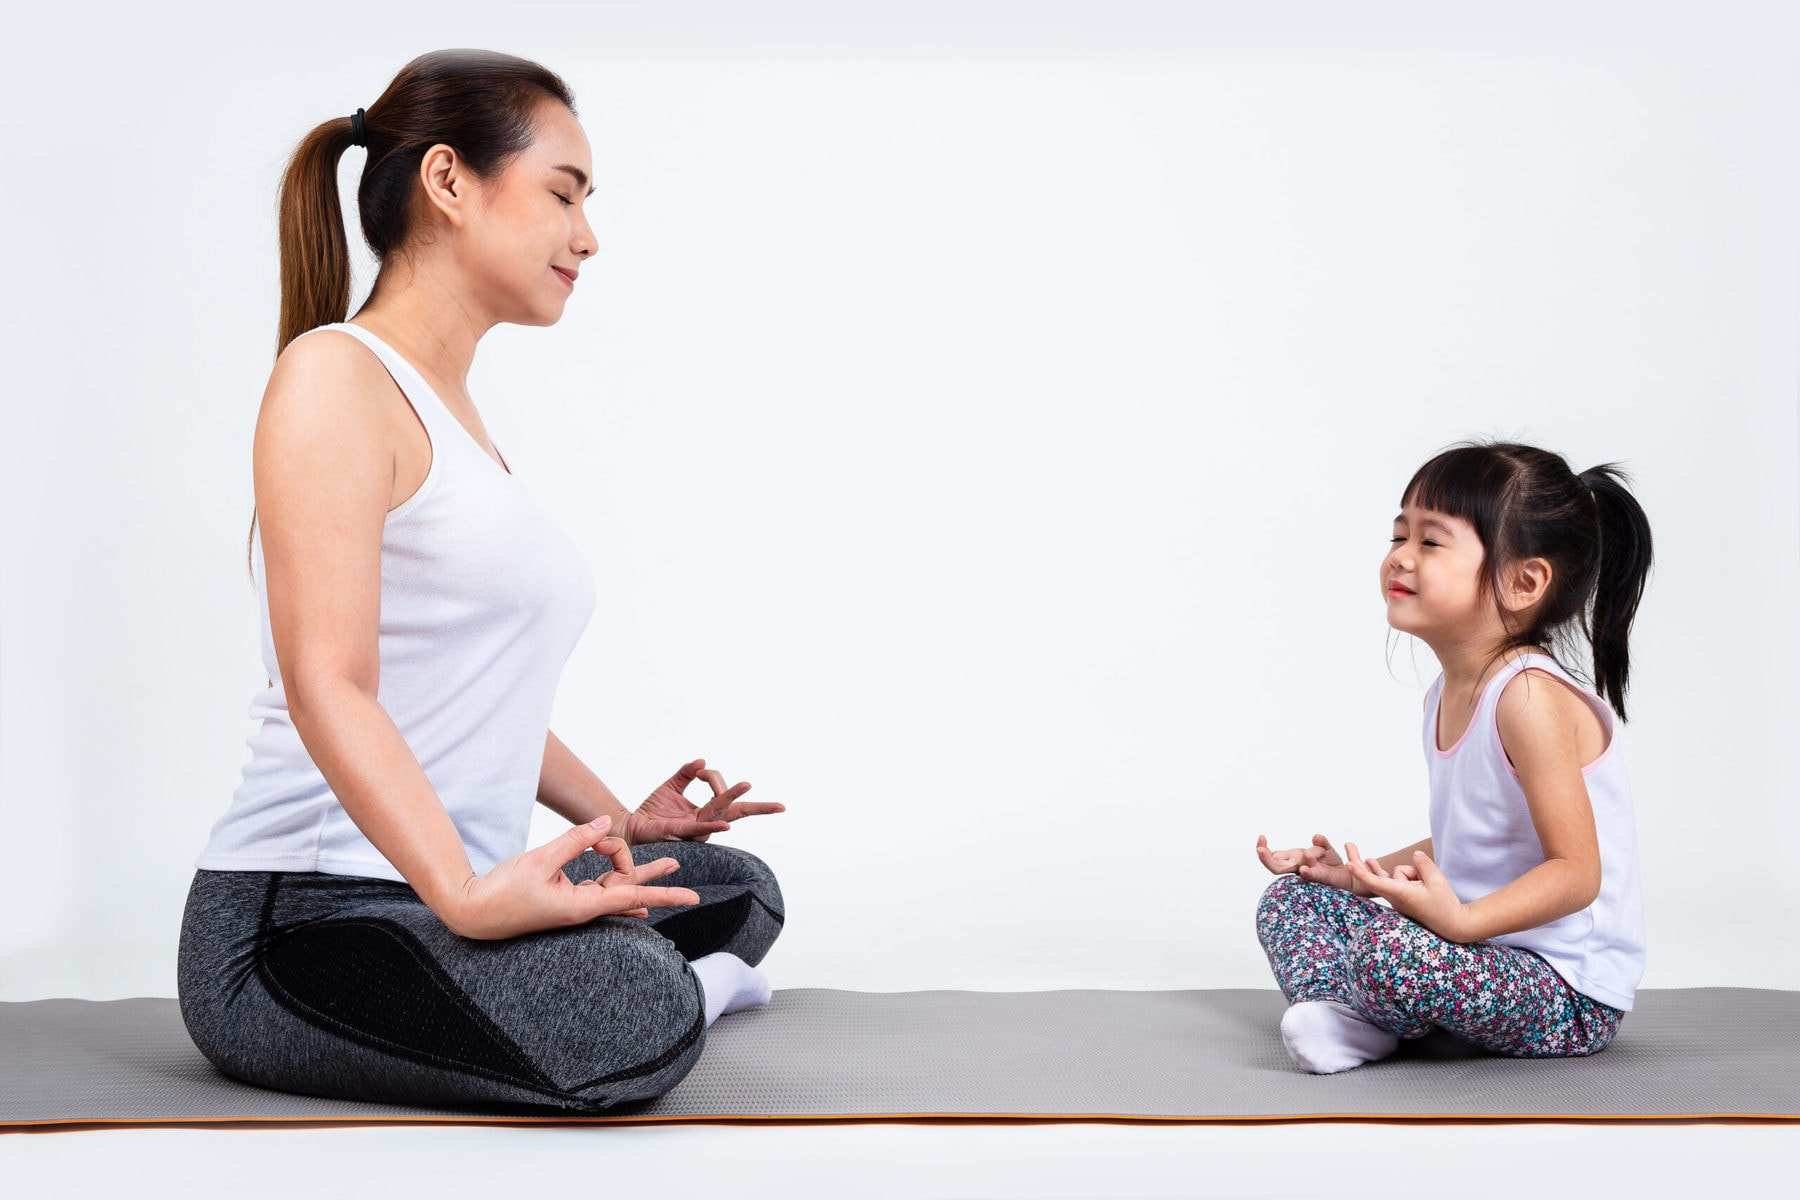 Daughter and mother sitting on yoga mat meditating.